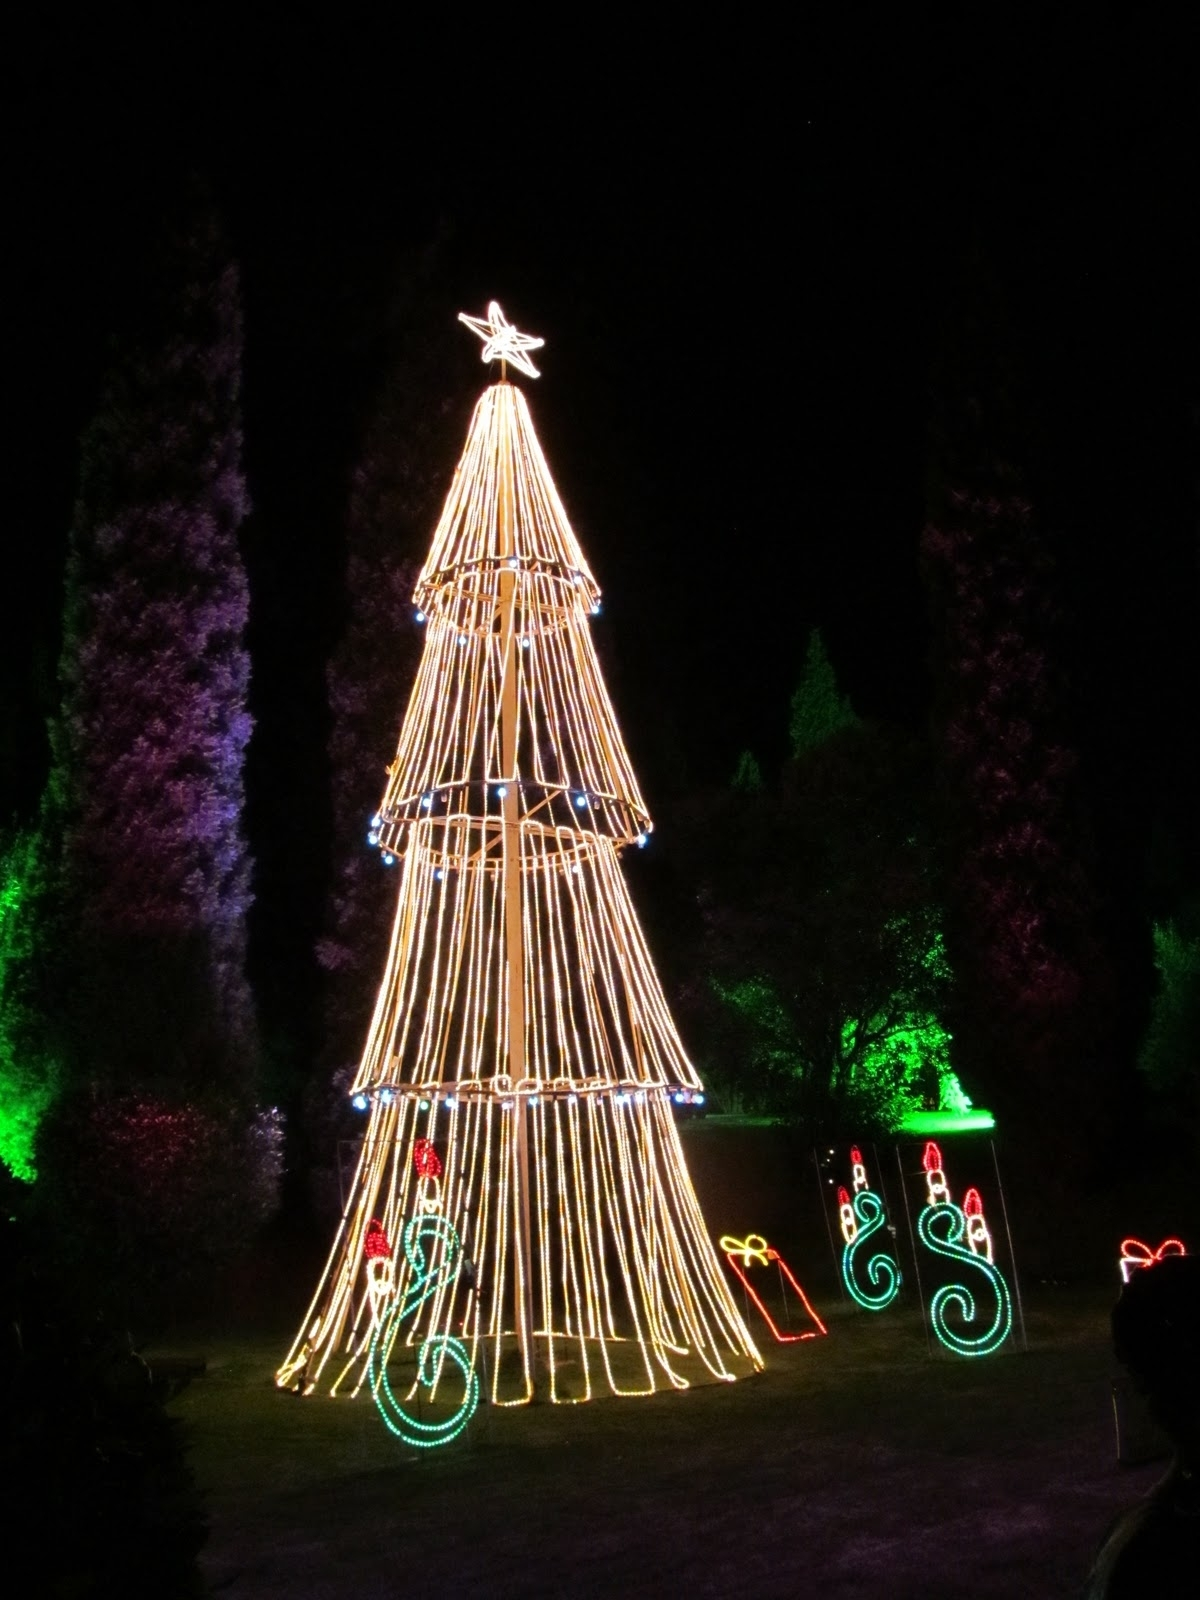 Plebs With Kids: Garden Of Lights @ Emperors Palace Review regarding Garden Of Light At Emperors Palace